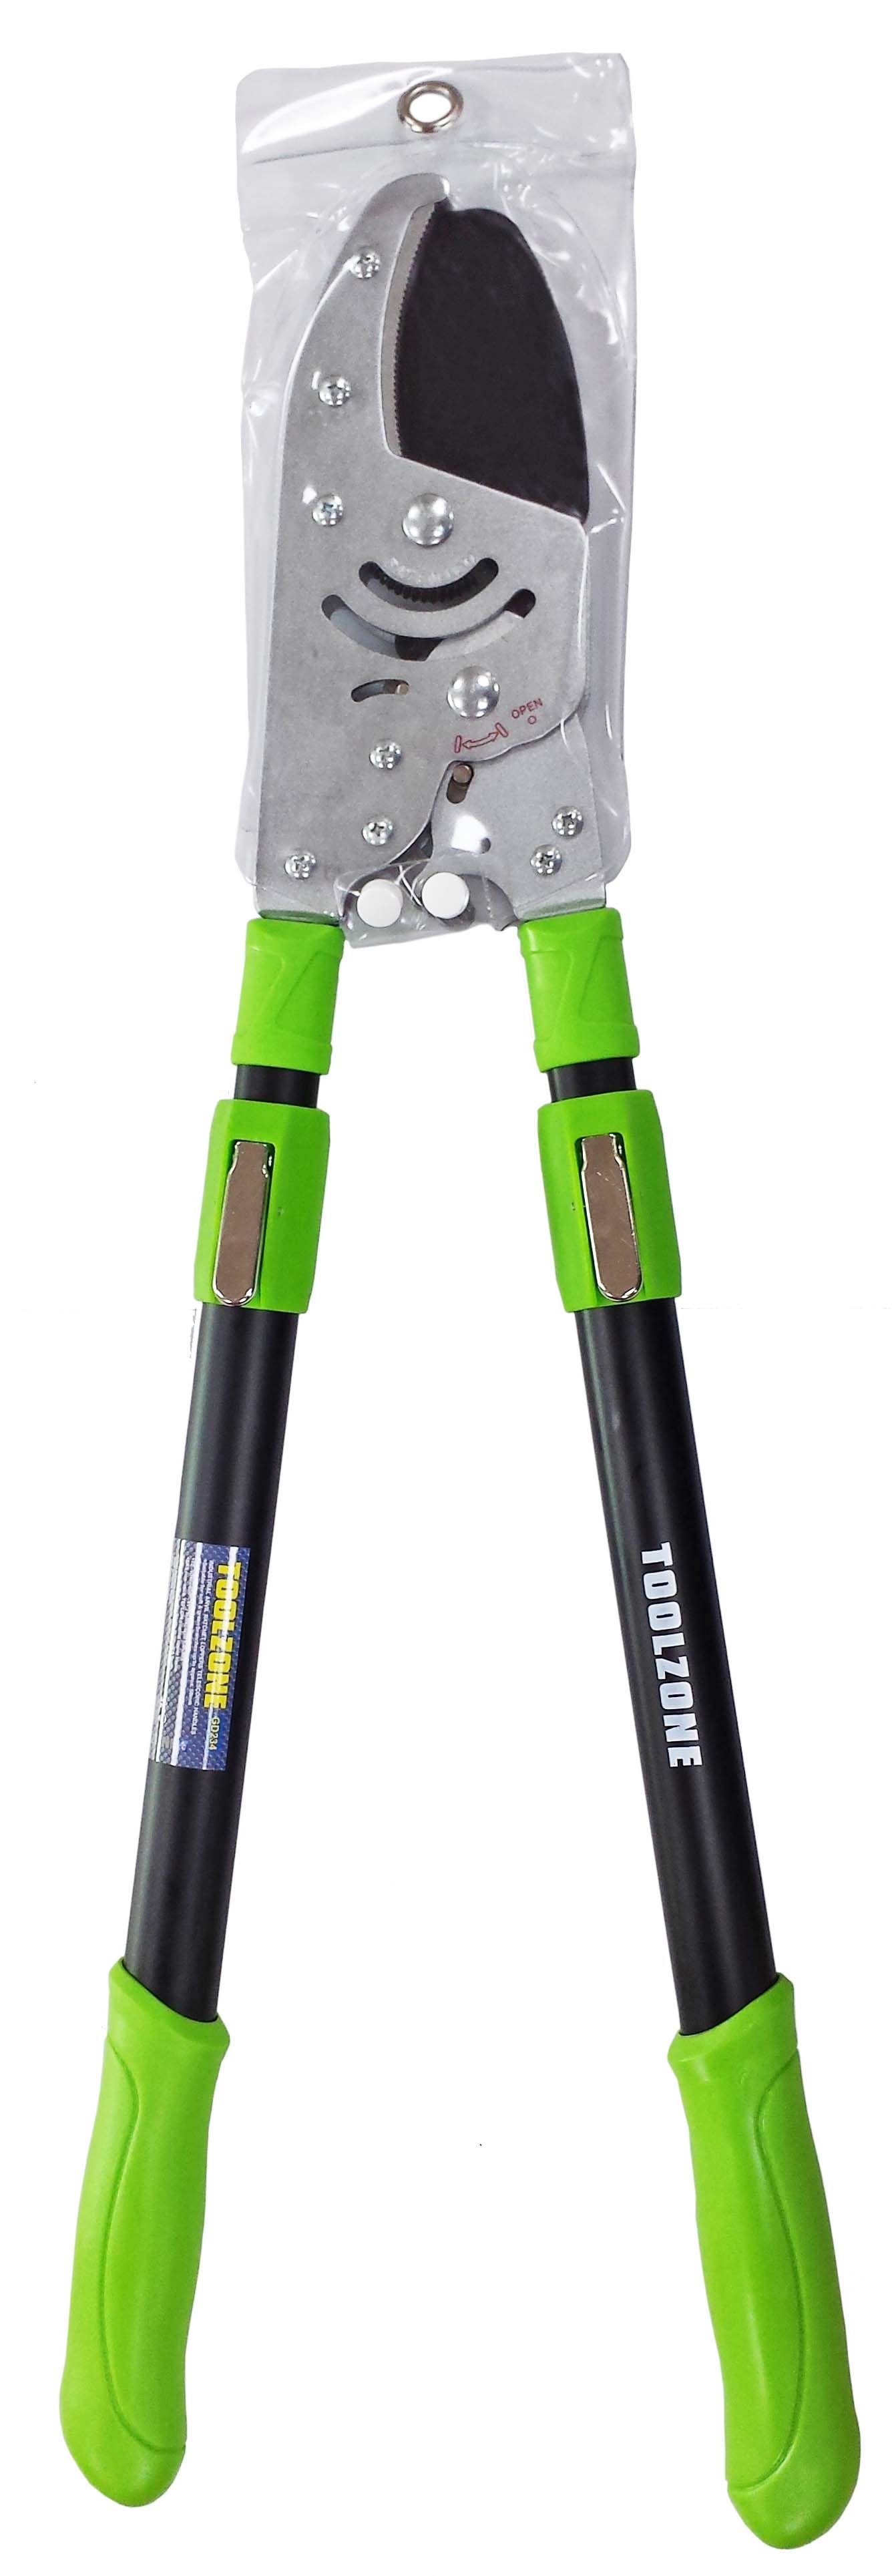 Toolzone Ext. Indust. Ratchet Loppers